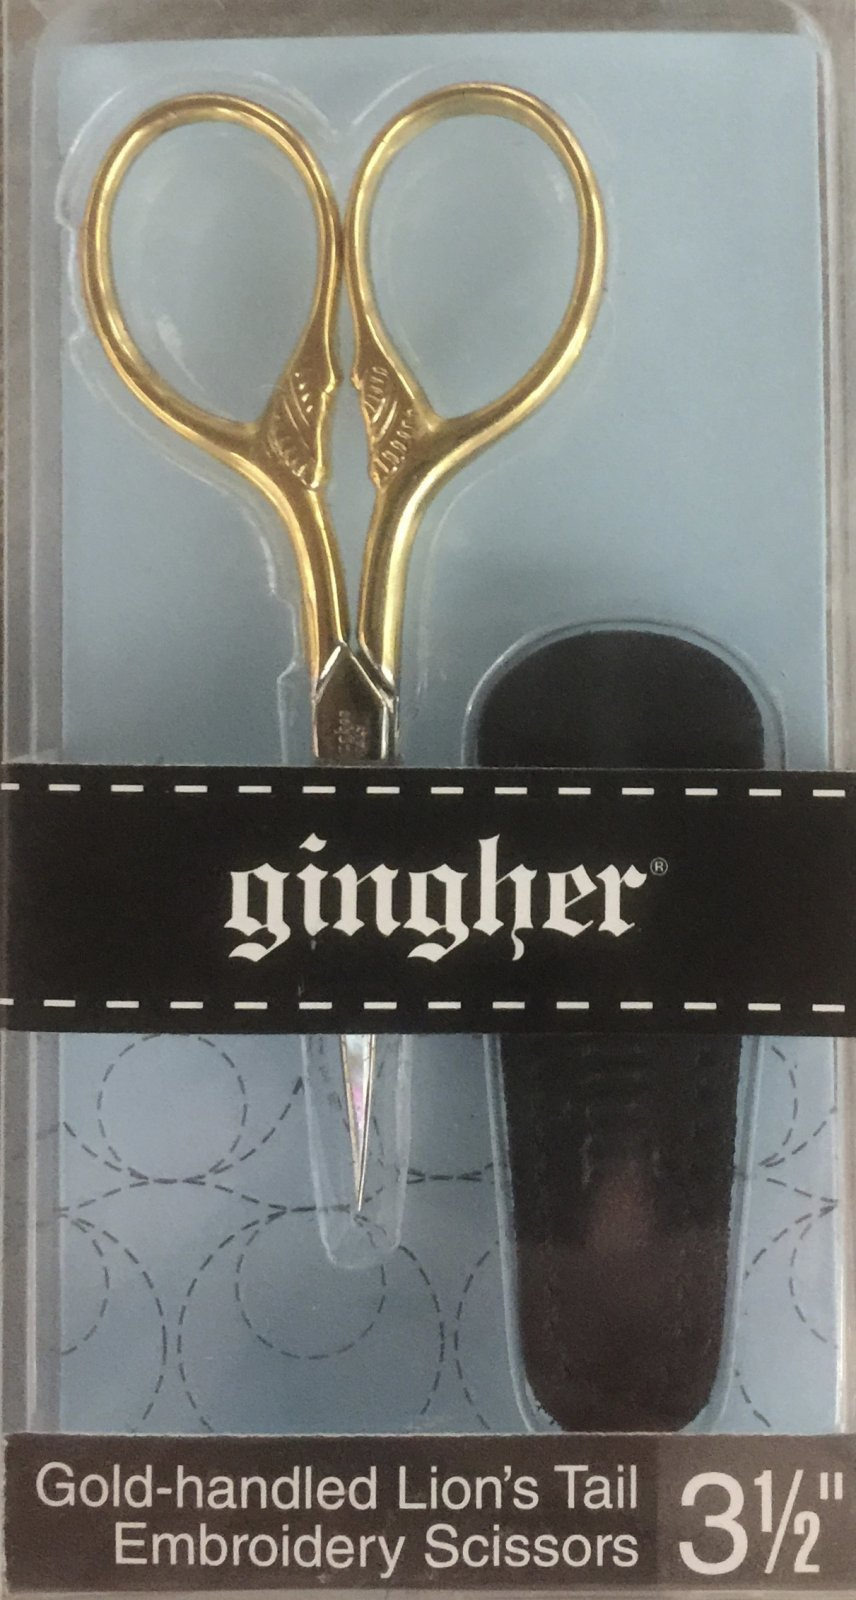 Gingher 3.5 Lion's Tail Embroidery Scissors